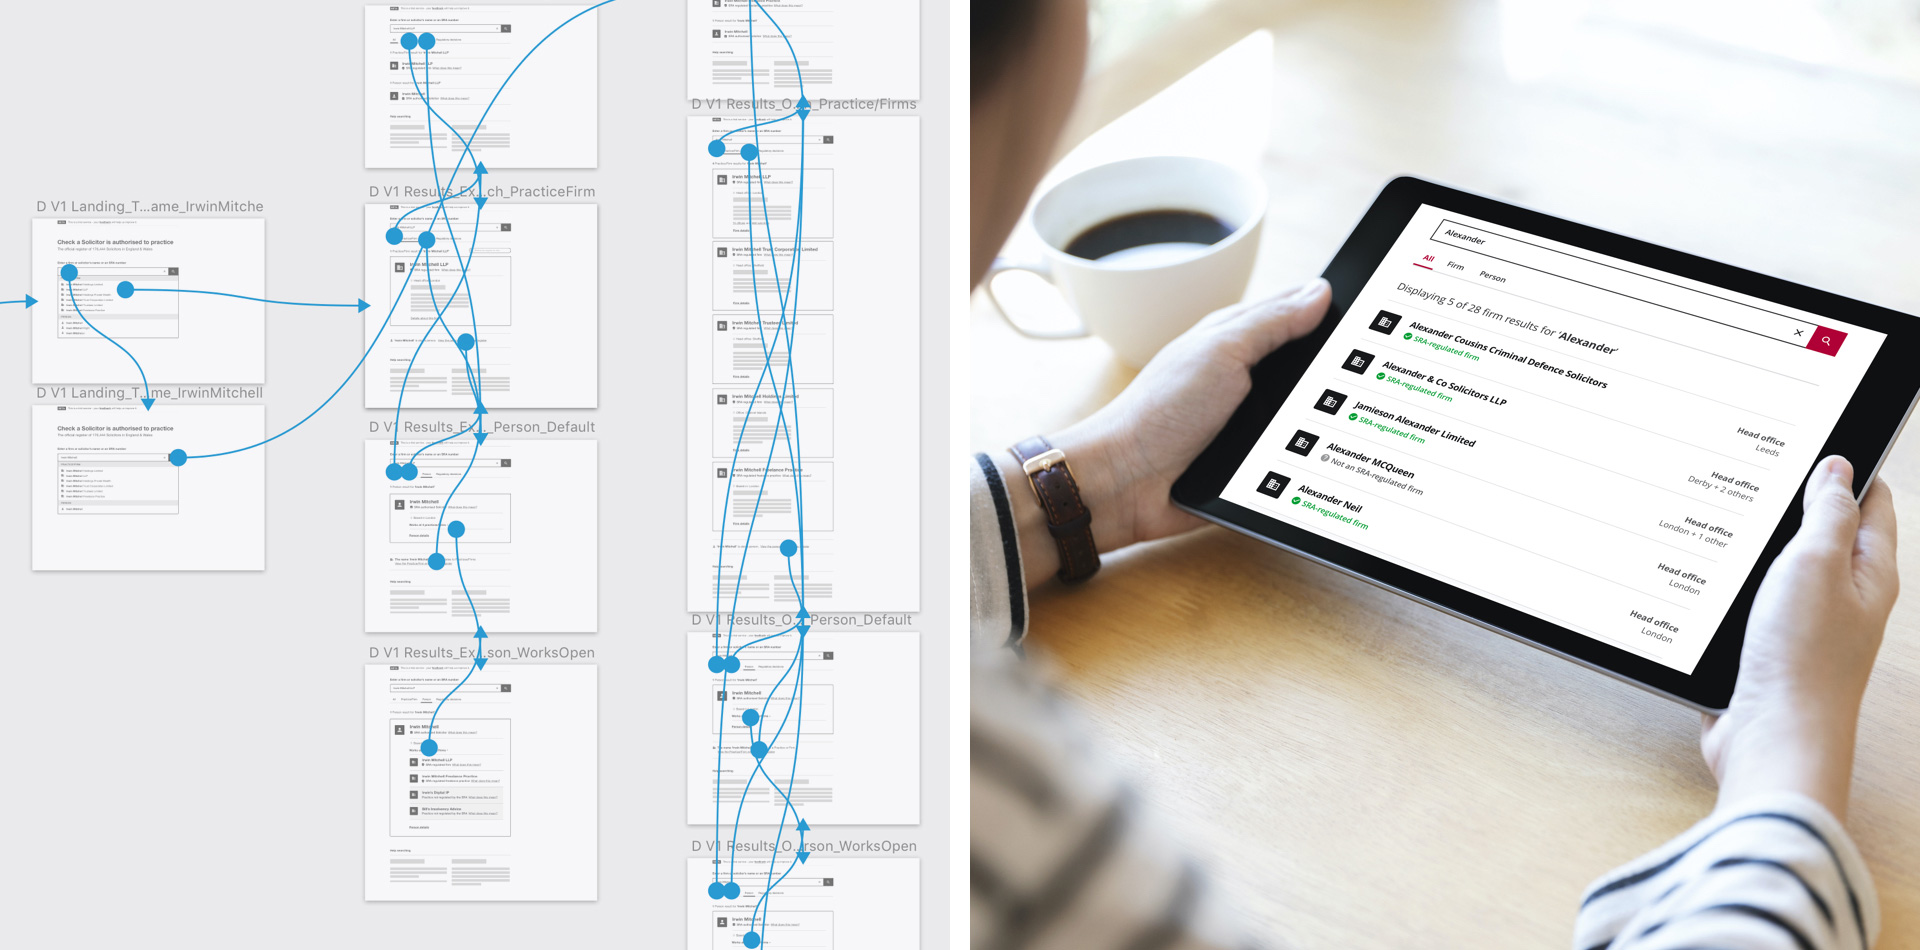 Prototyping user journeys allowed us to work quickly to iterate and test our design solutions